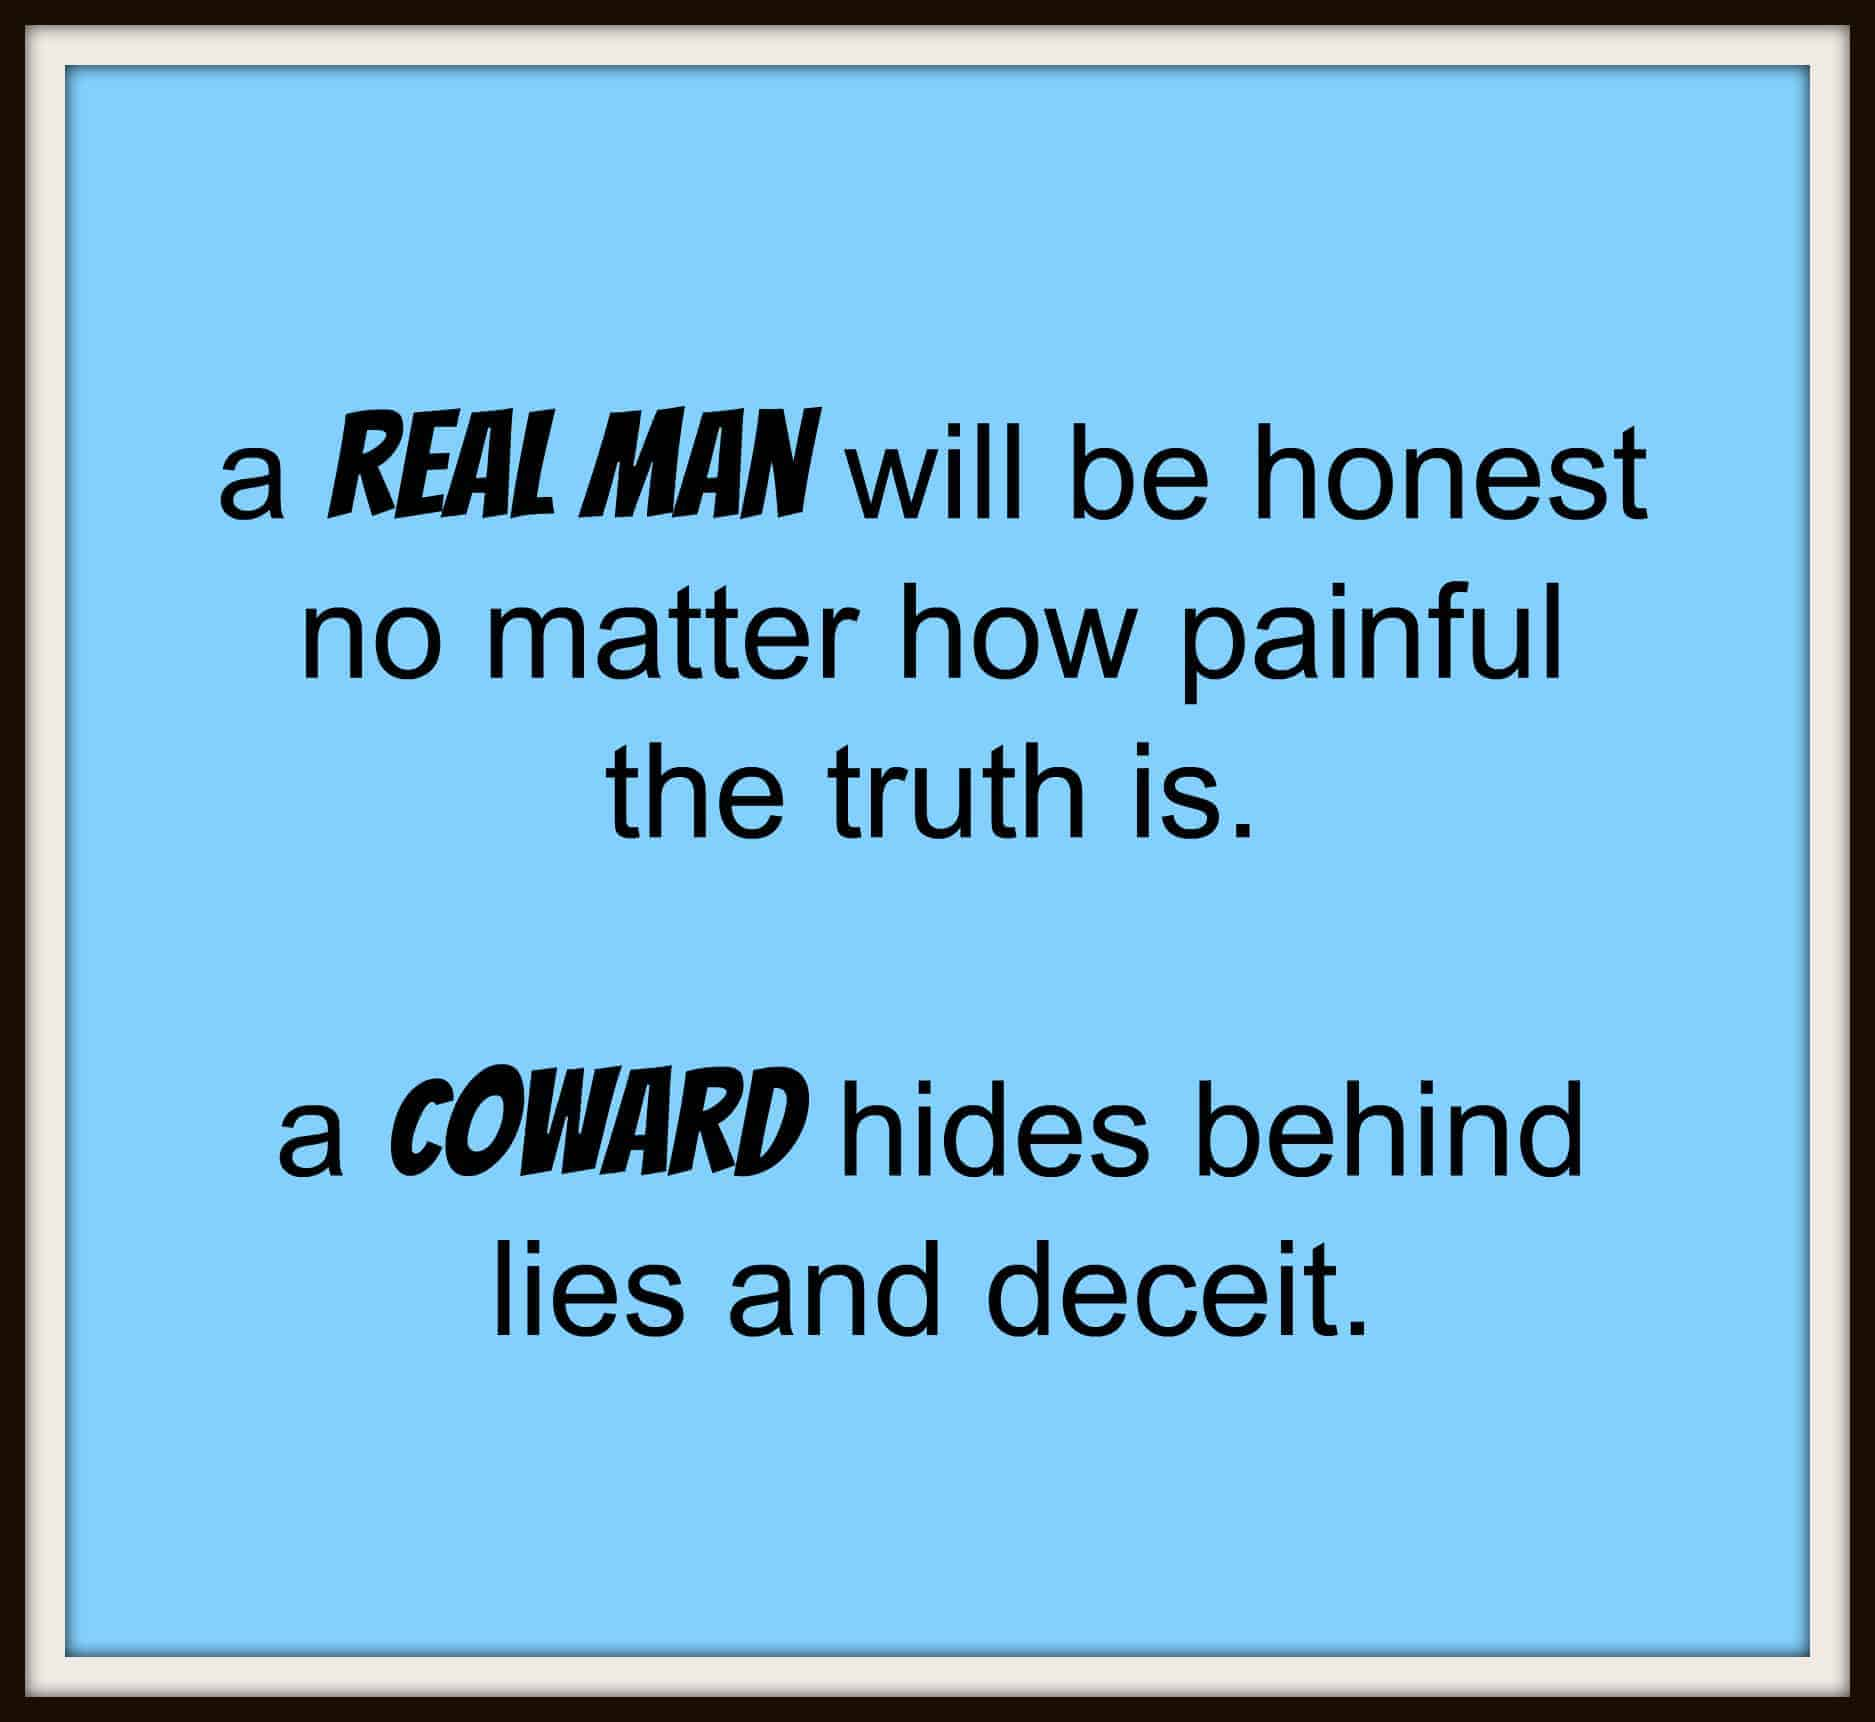 a real man will be honest no matter how painful the truth is, a coward hides behind lies and deceit.